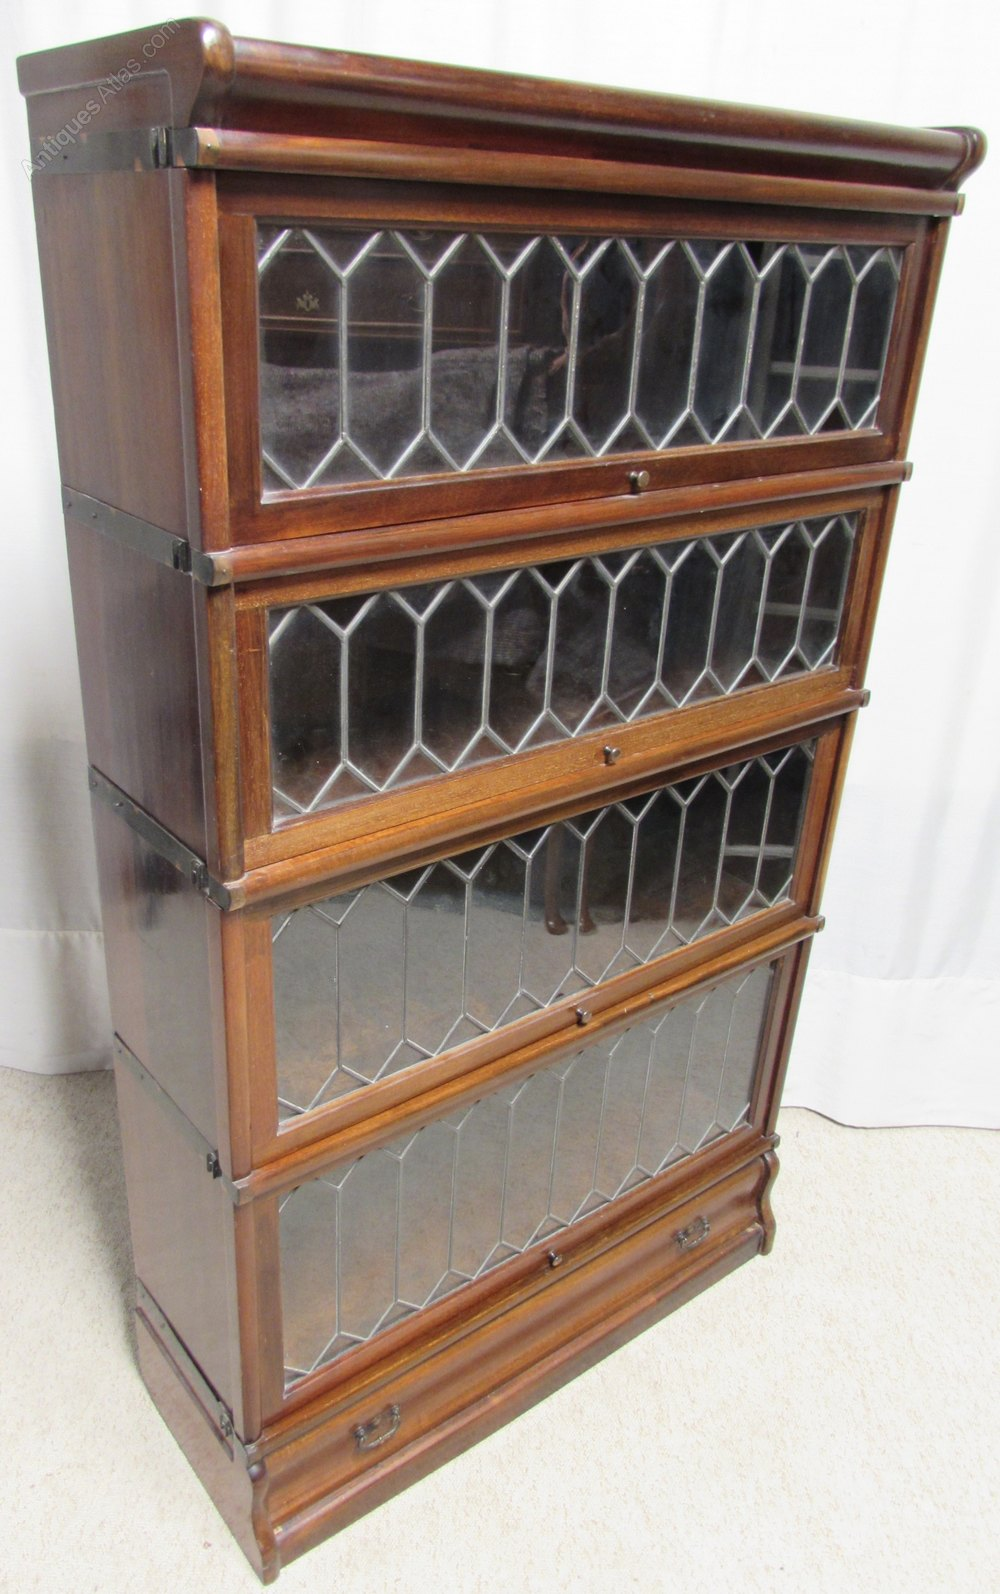 Mahogany Globe Wernicke Bookcase Antique Stacking Bookcases Alt5 Alt6